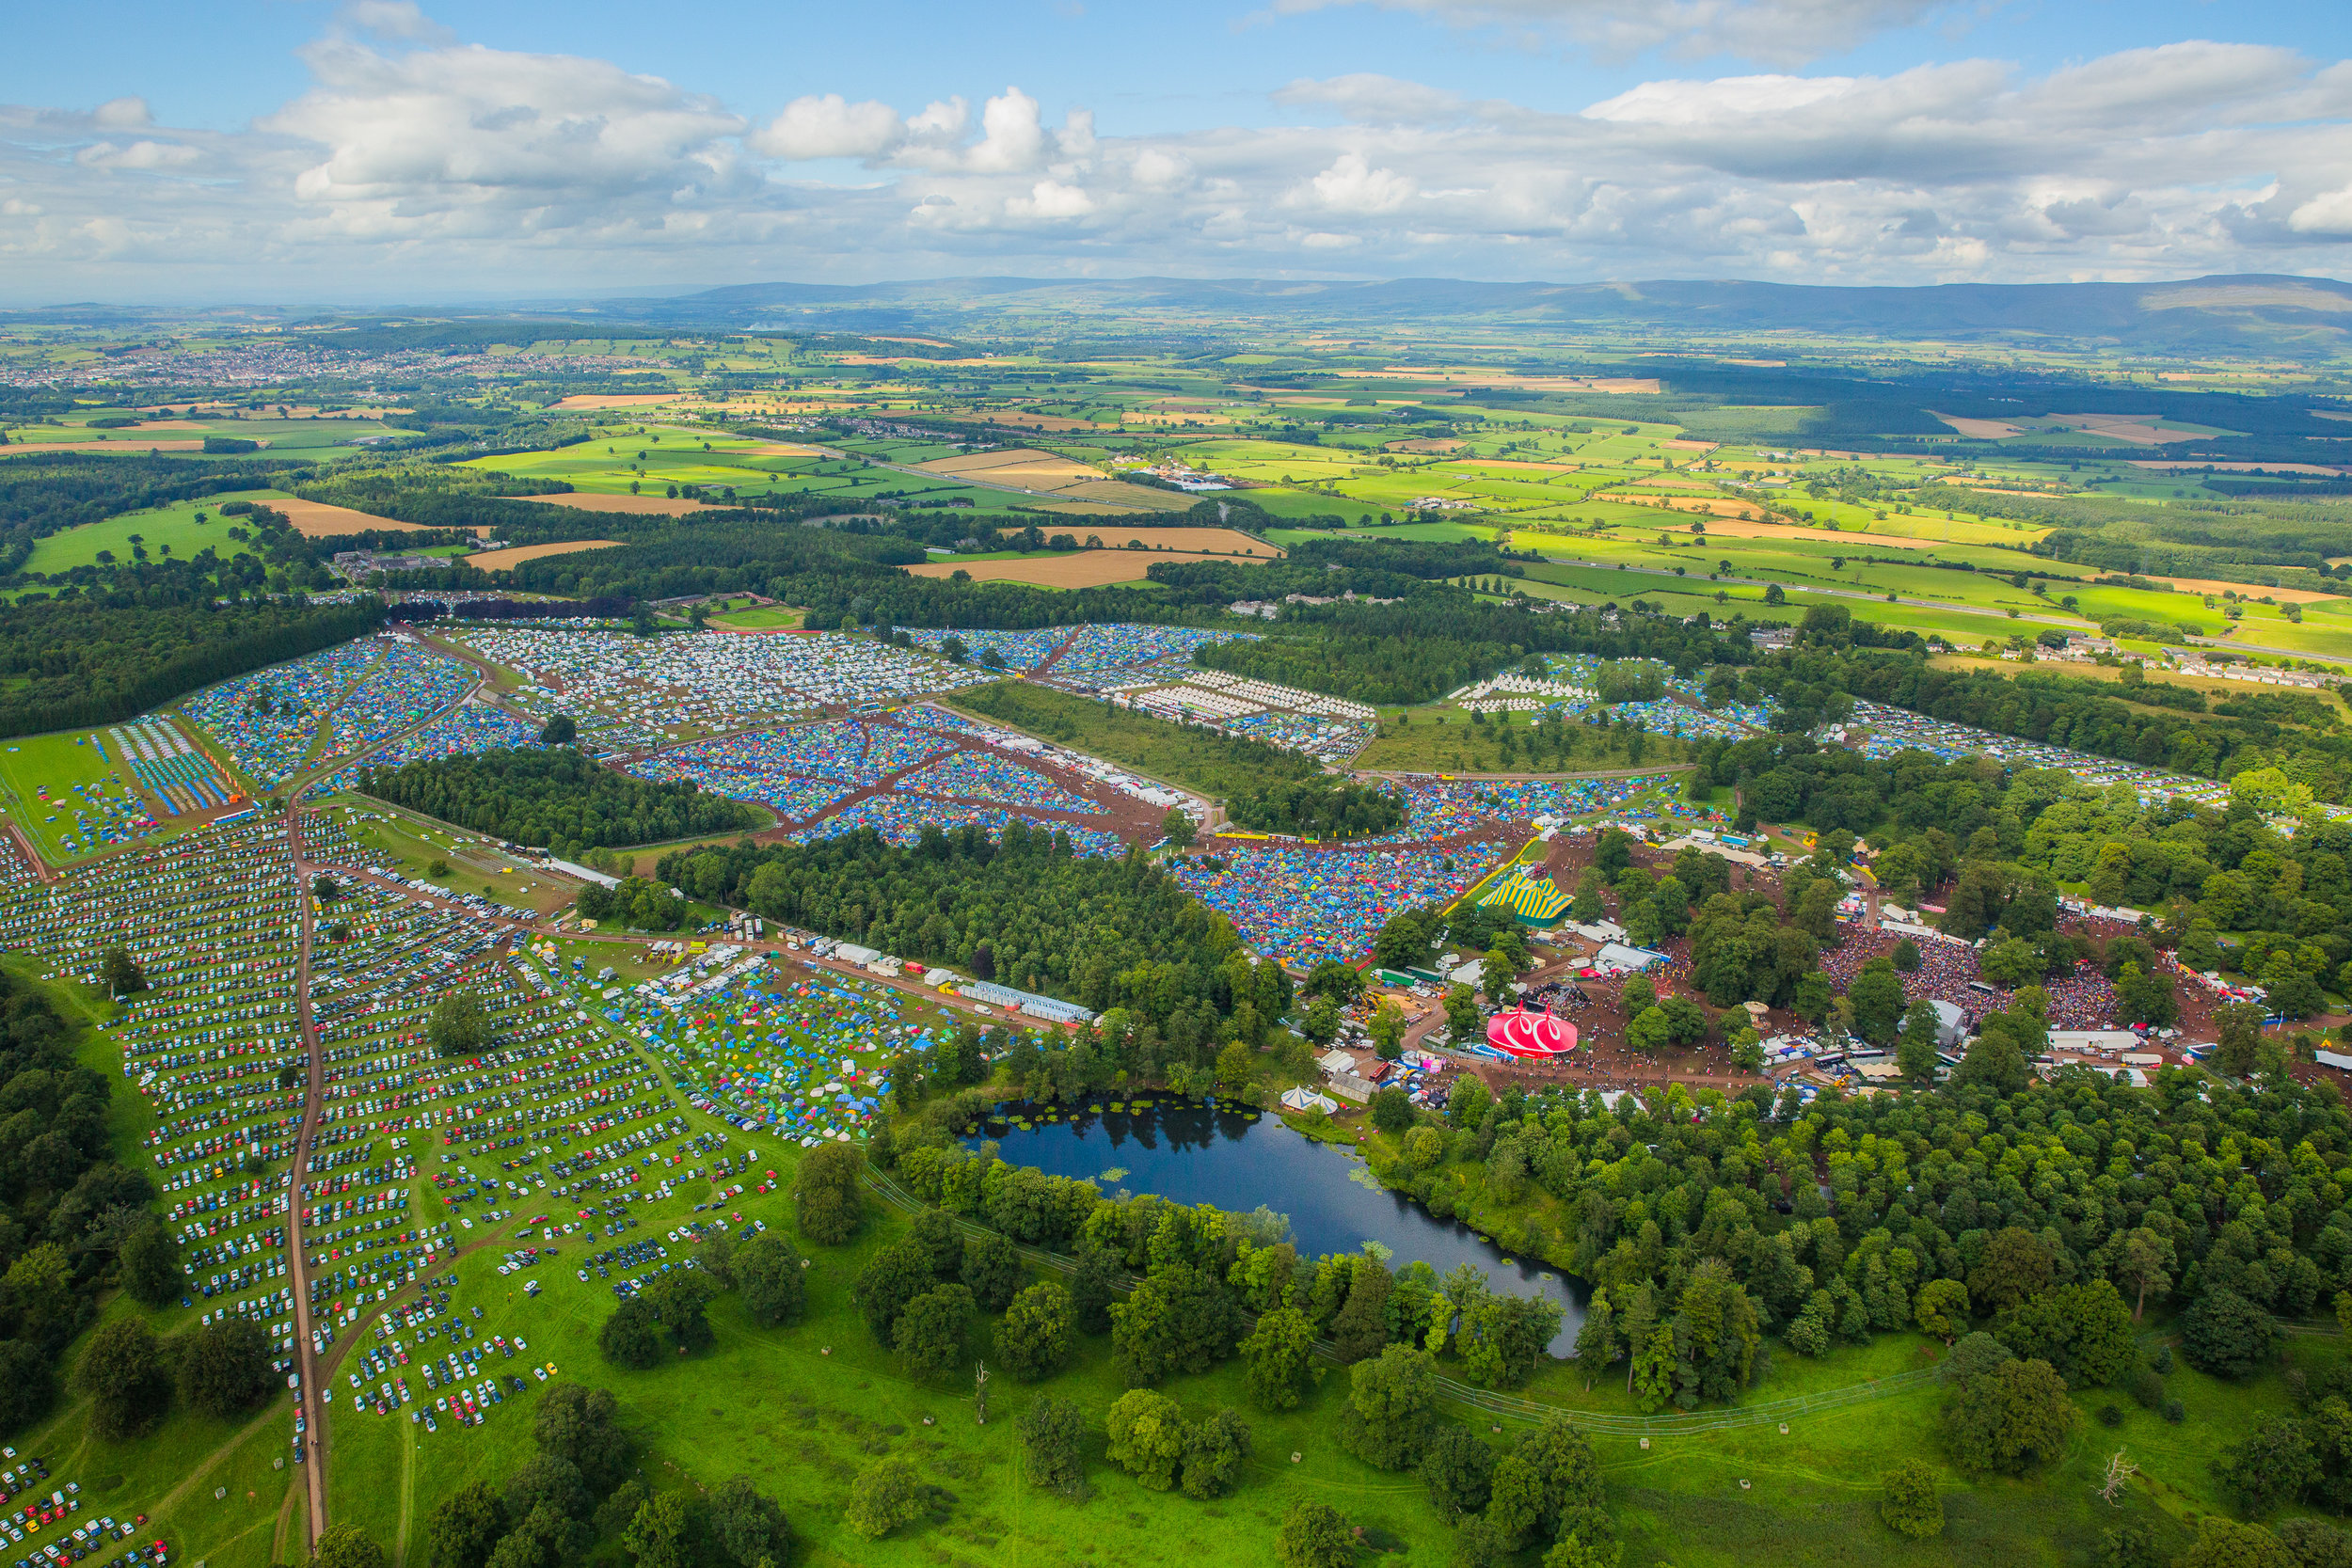 KENDAL CALLING FESTIVAL 2017 - CAMPING SITE AND ARENA FROM ABOVE  PICTURE BY: JODY HARTLEY